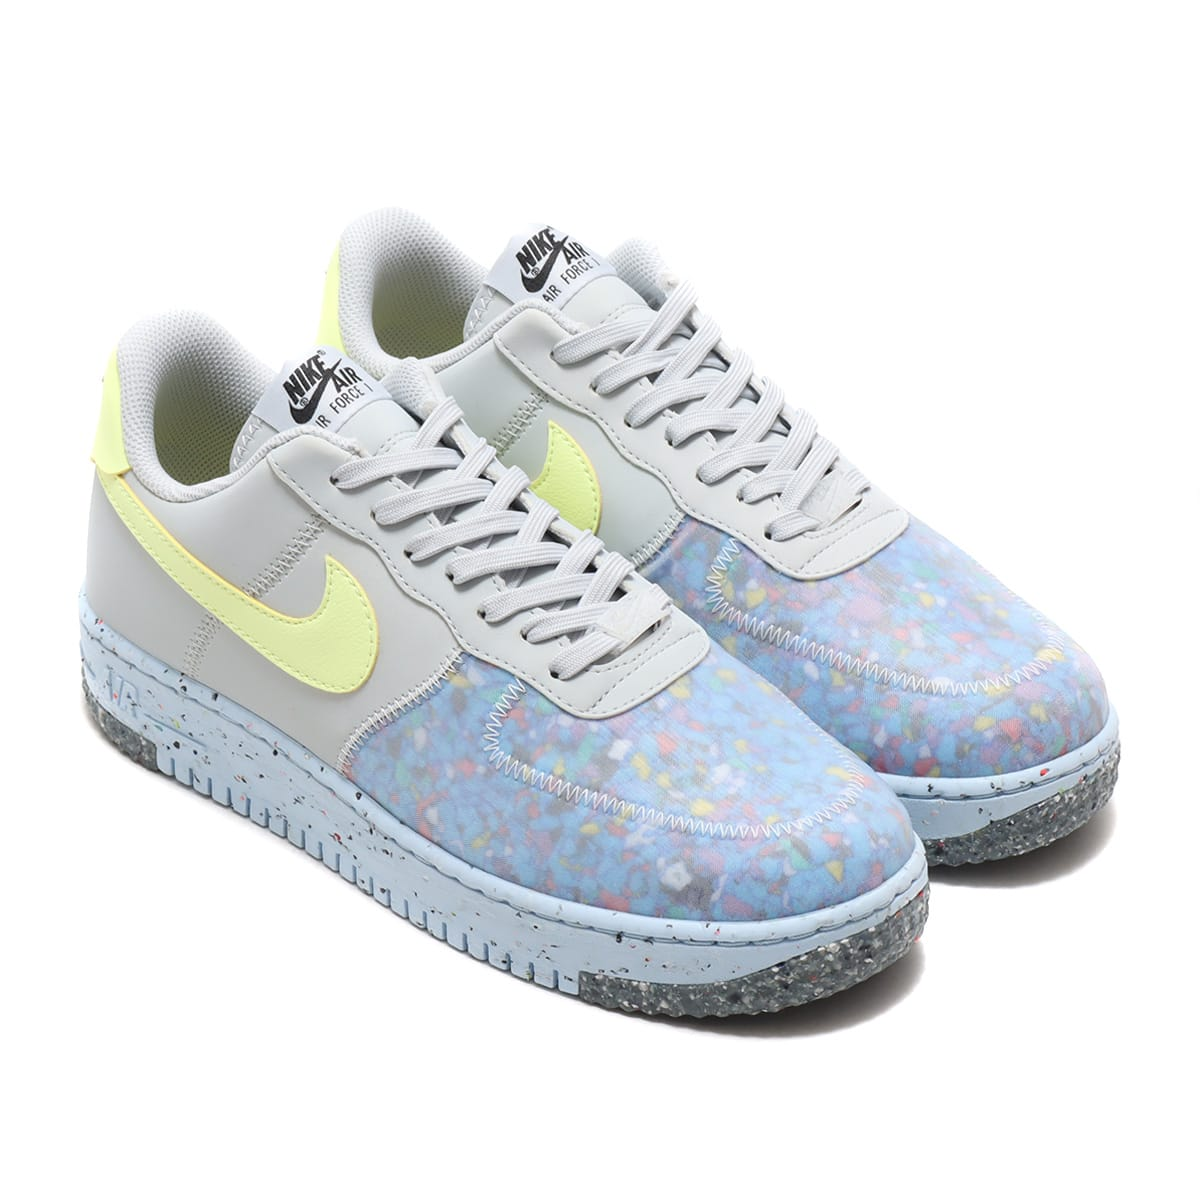 NIKE AIR FORCE 1 CRATER PURE PLATINUM/BARELY VOLT-SUMMIT WHITE 20HO-I_photo_large